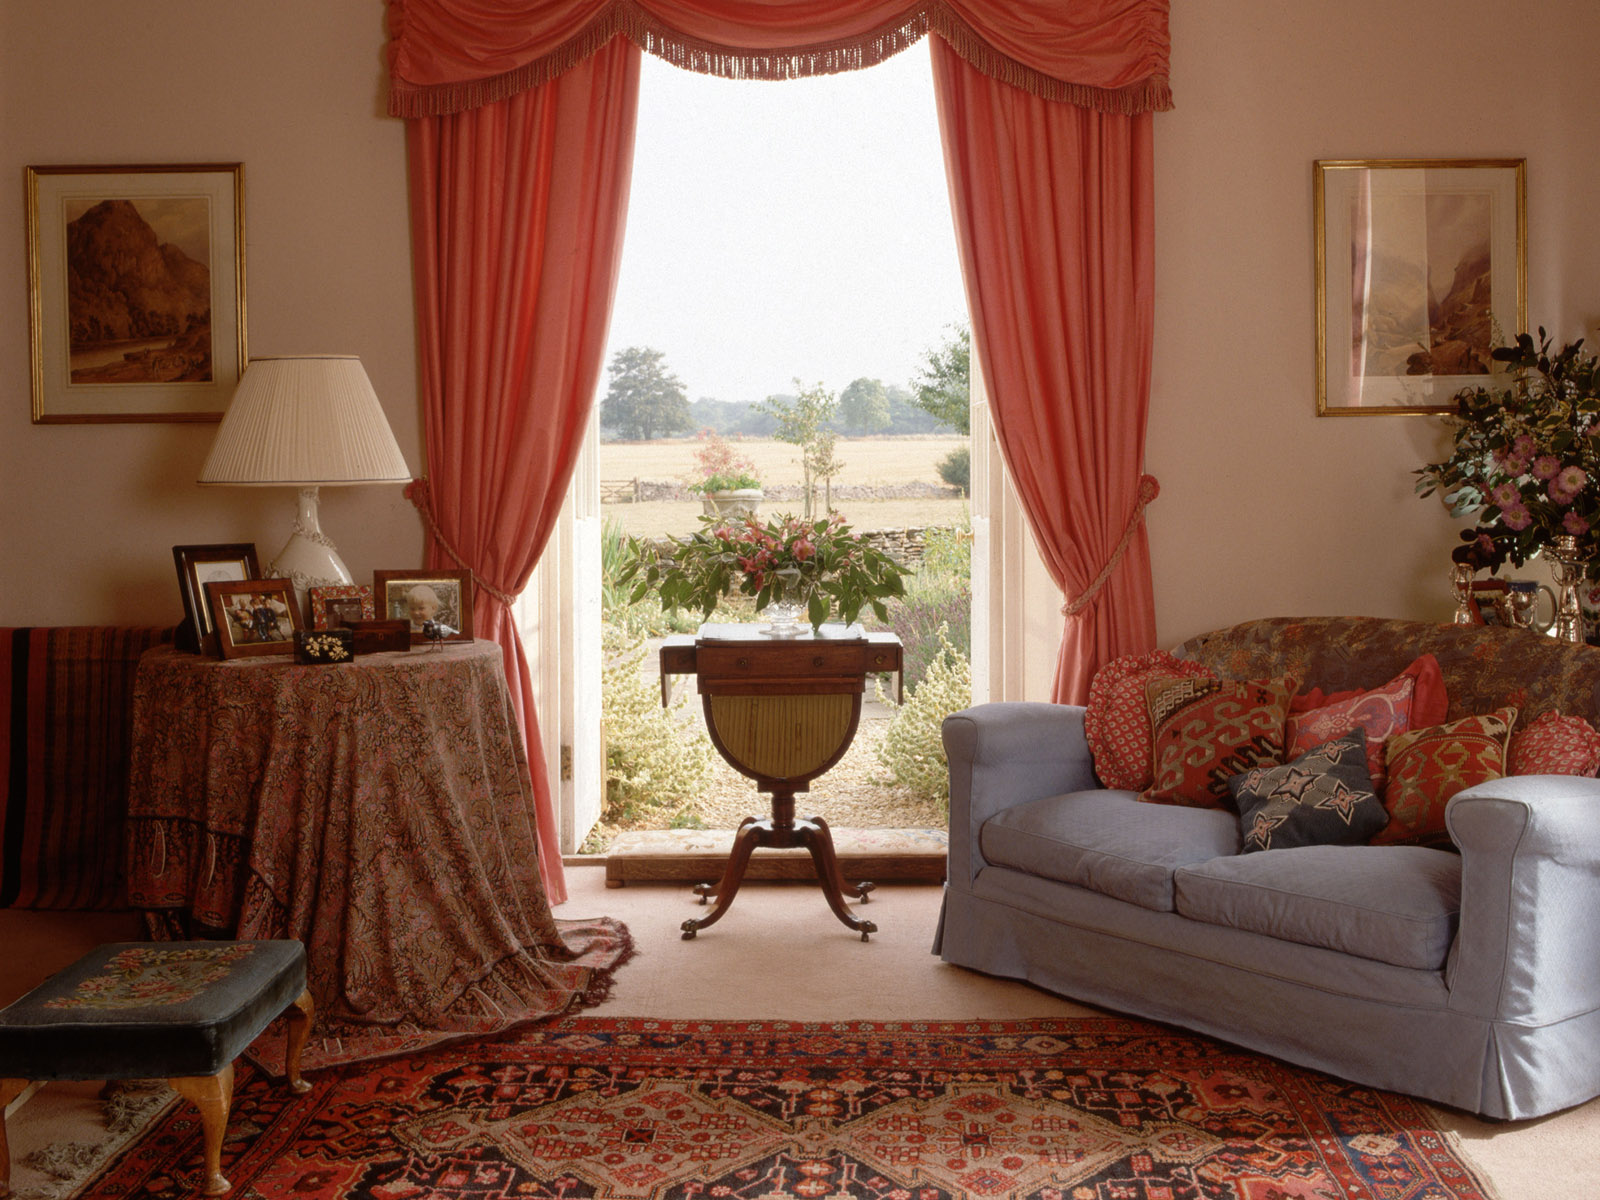 Red curtains frame a window in a country style living room.